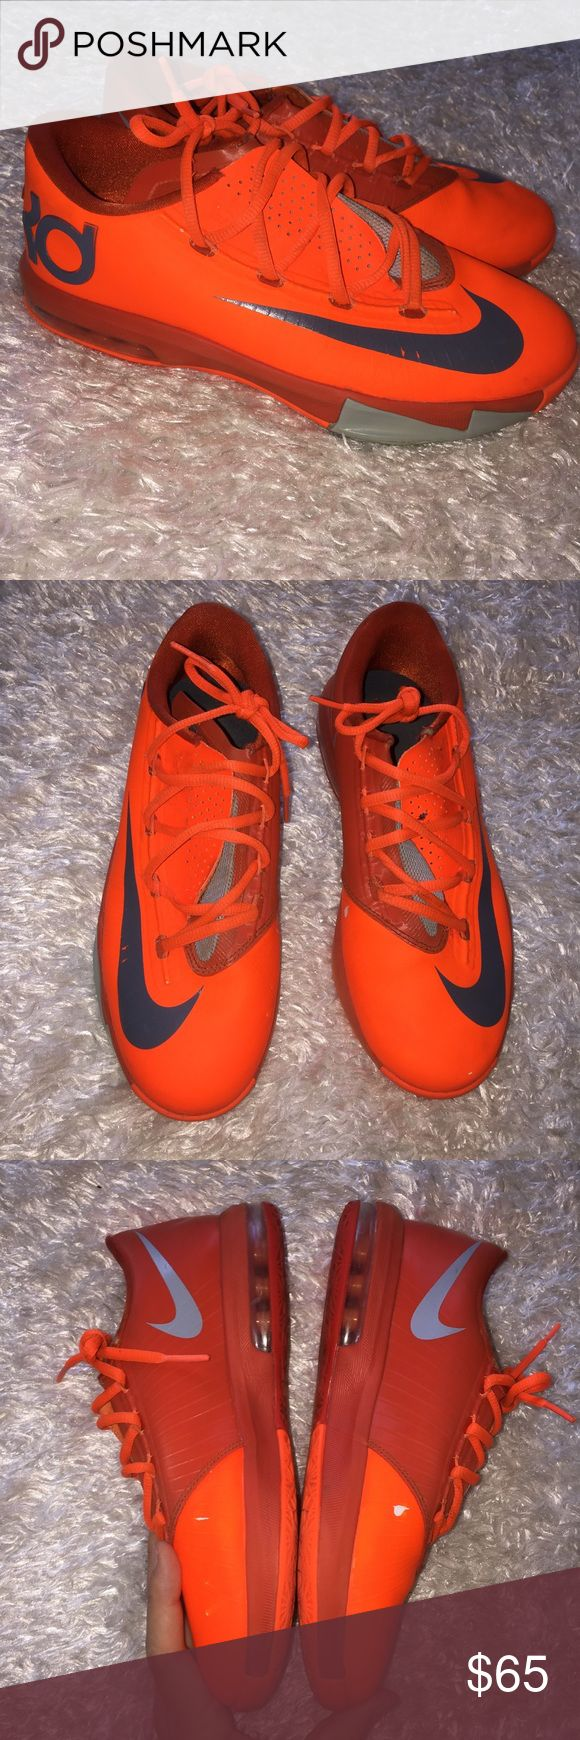 KD Neon Orange Shoes See photos for blemishes . Overall pretty good condition, size is a 6Y which can fit as a women's 8 as well. Feel free to ask any questions! No trades sorry, offers thru the offer button only! x.. Nike Shoes